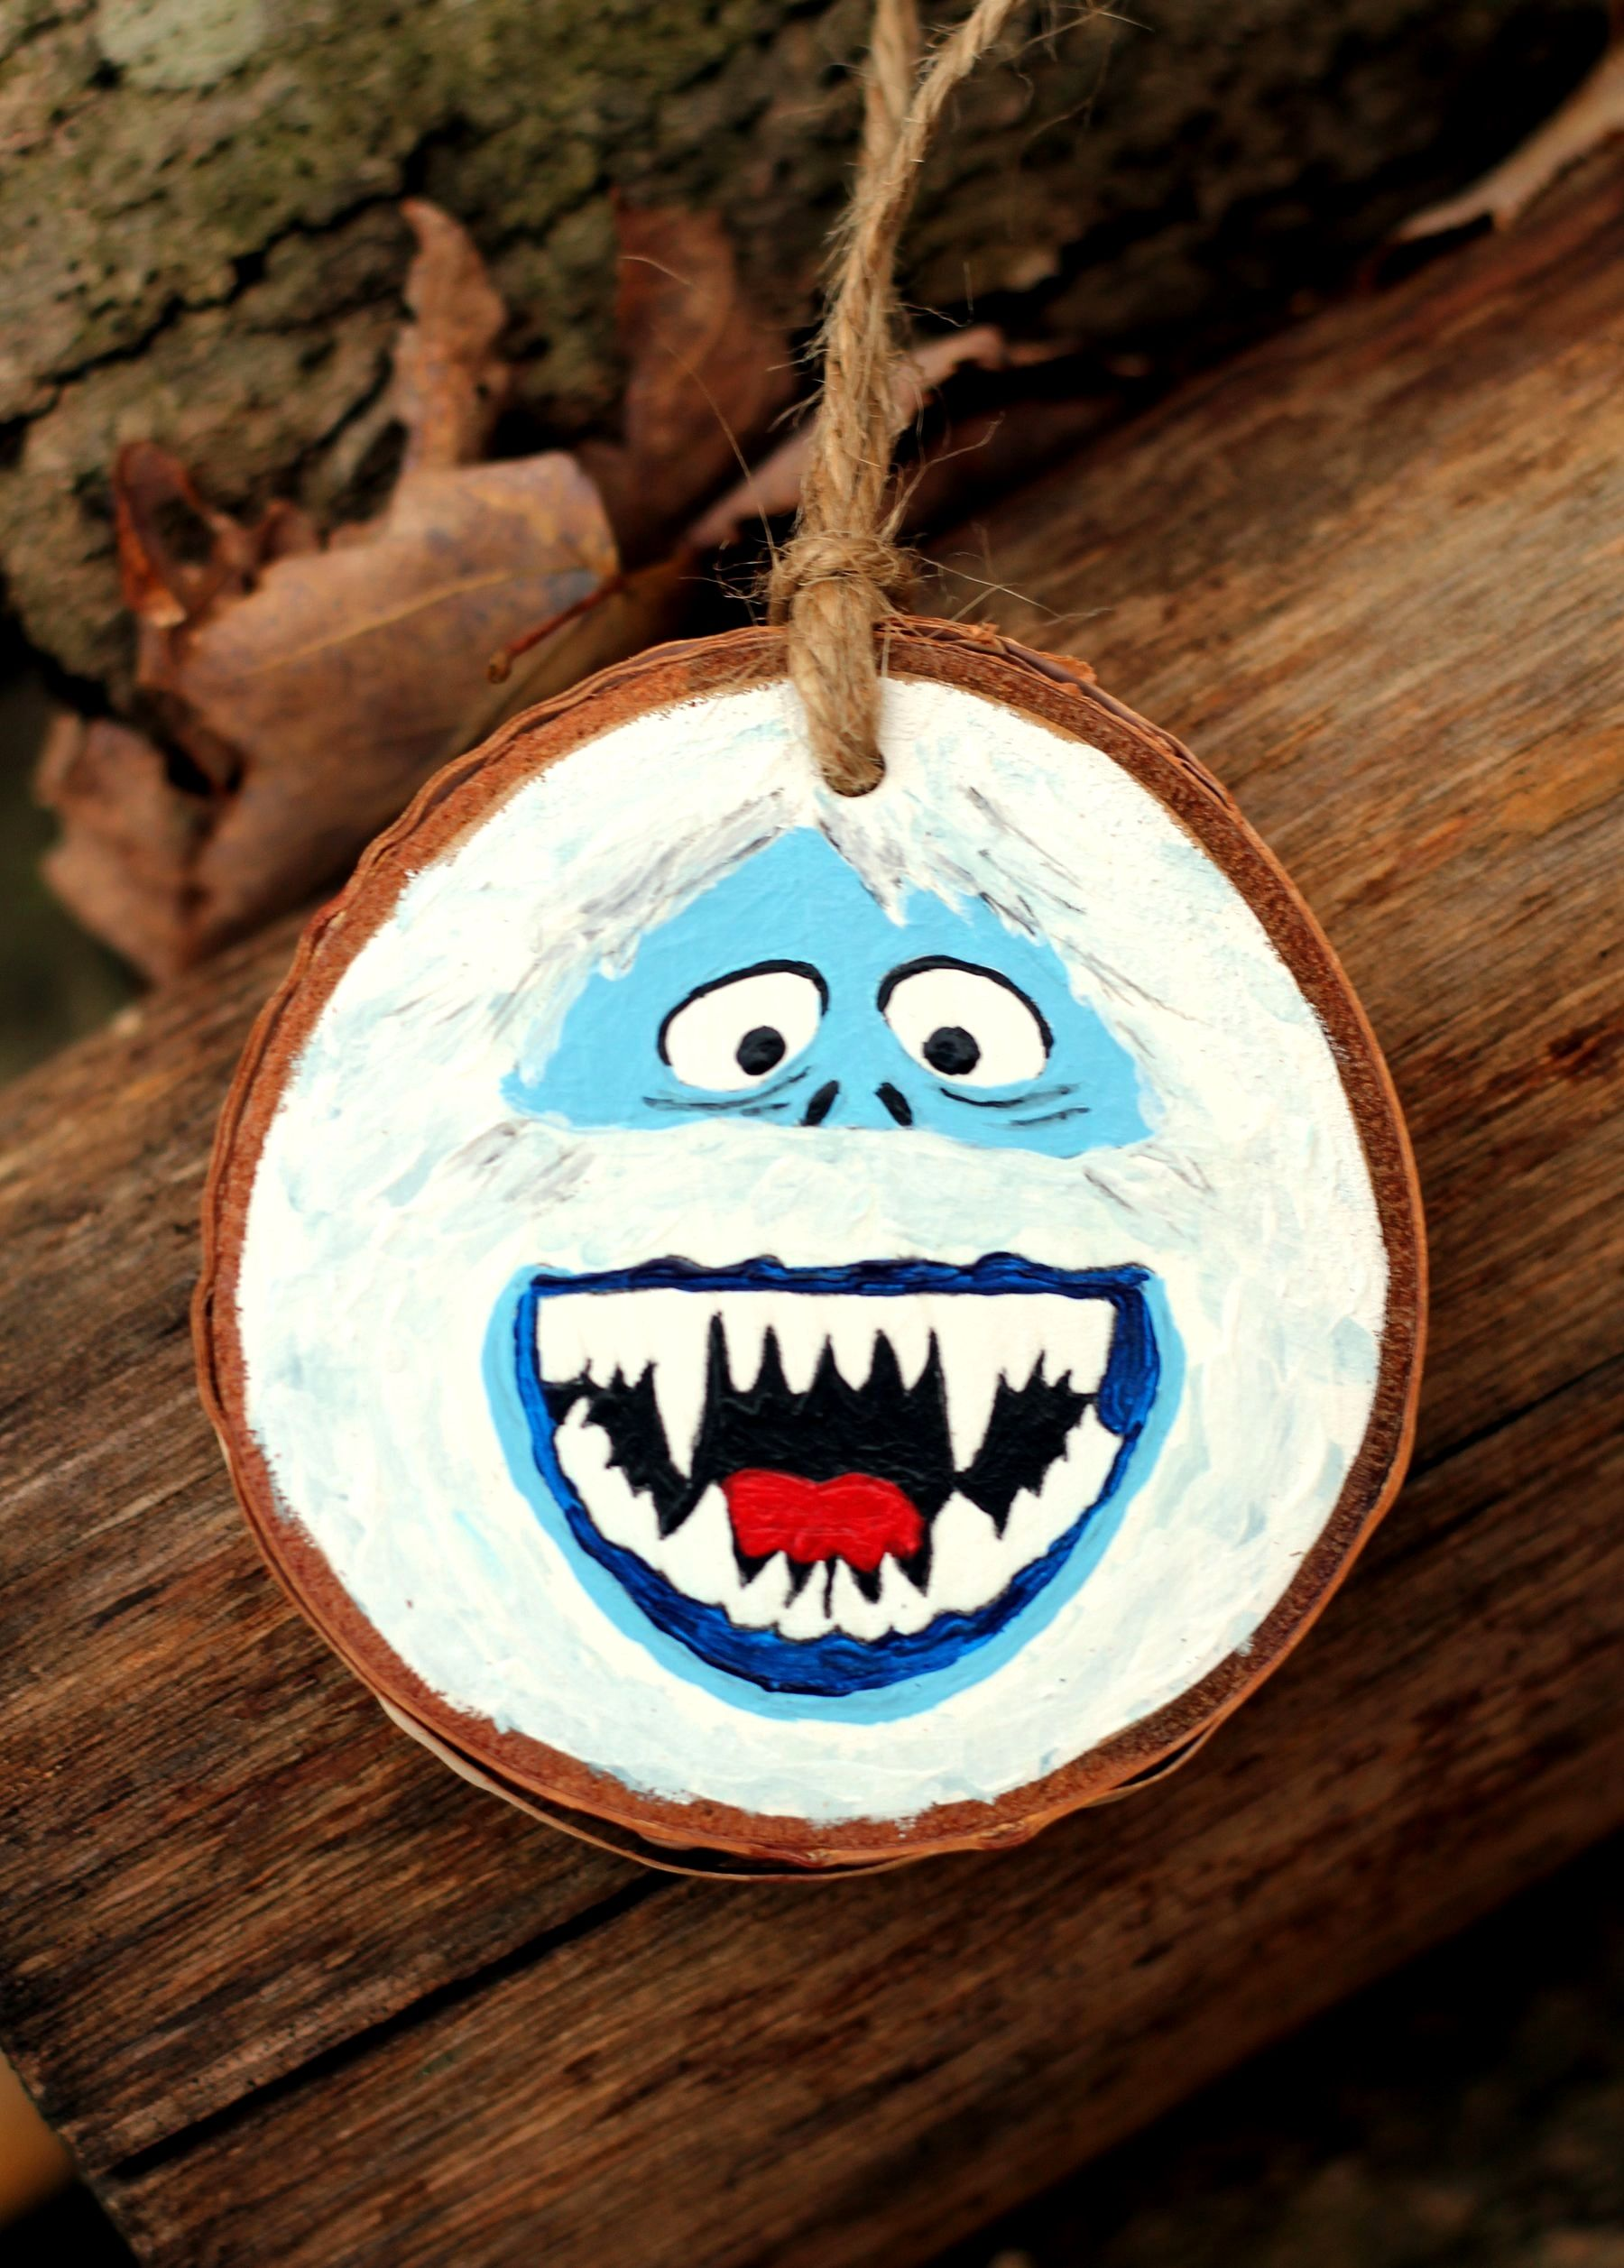 Abominable Snowman Ornaments Trick Christmas Ornament Crafts Wood Christmas Ornaments Christmas Ornaments To Make